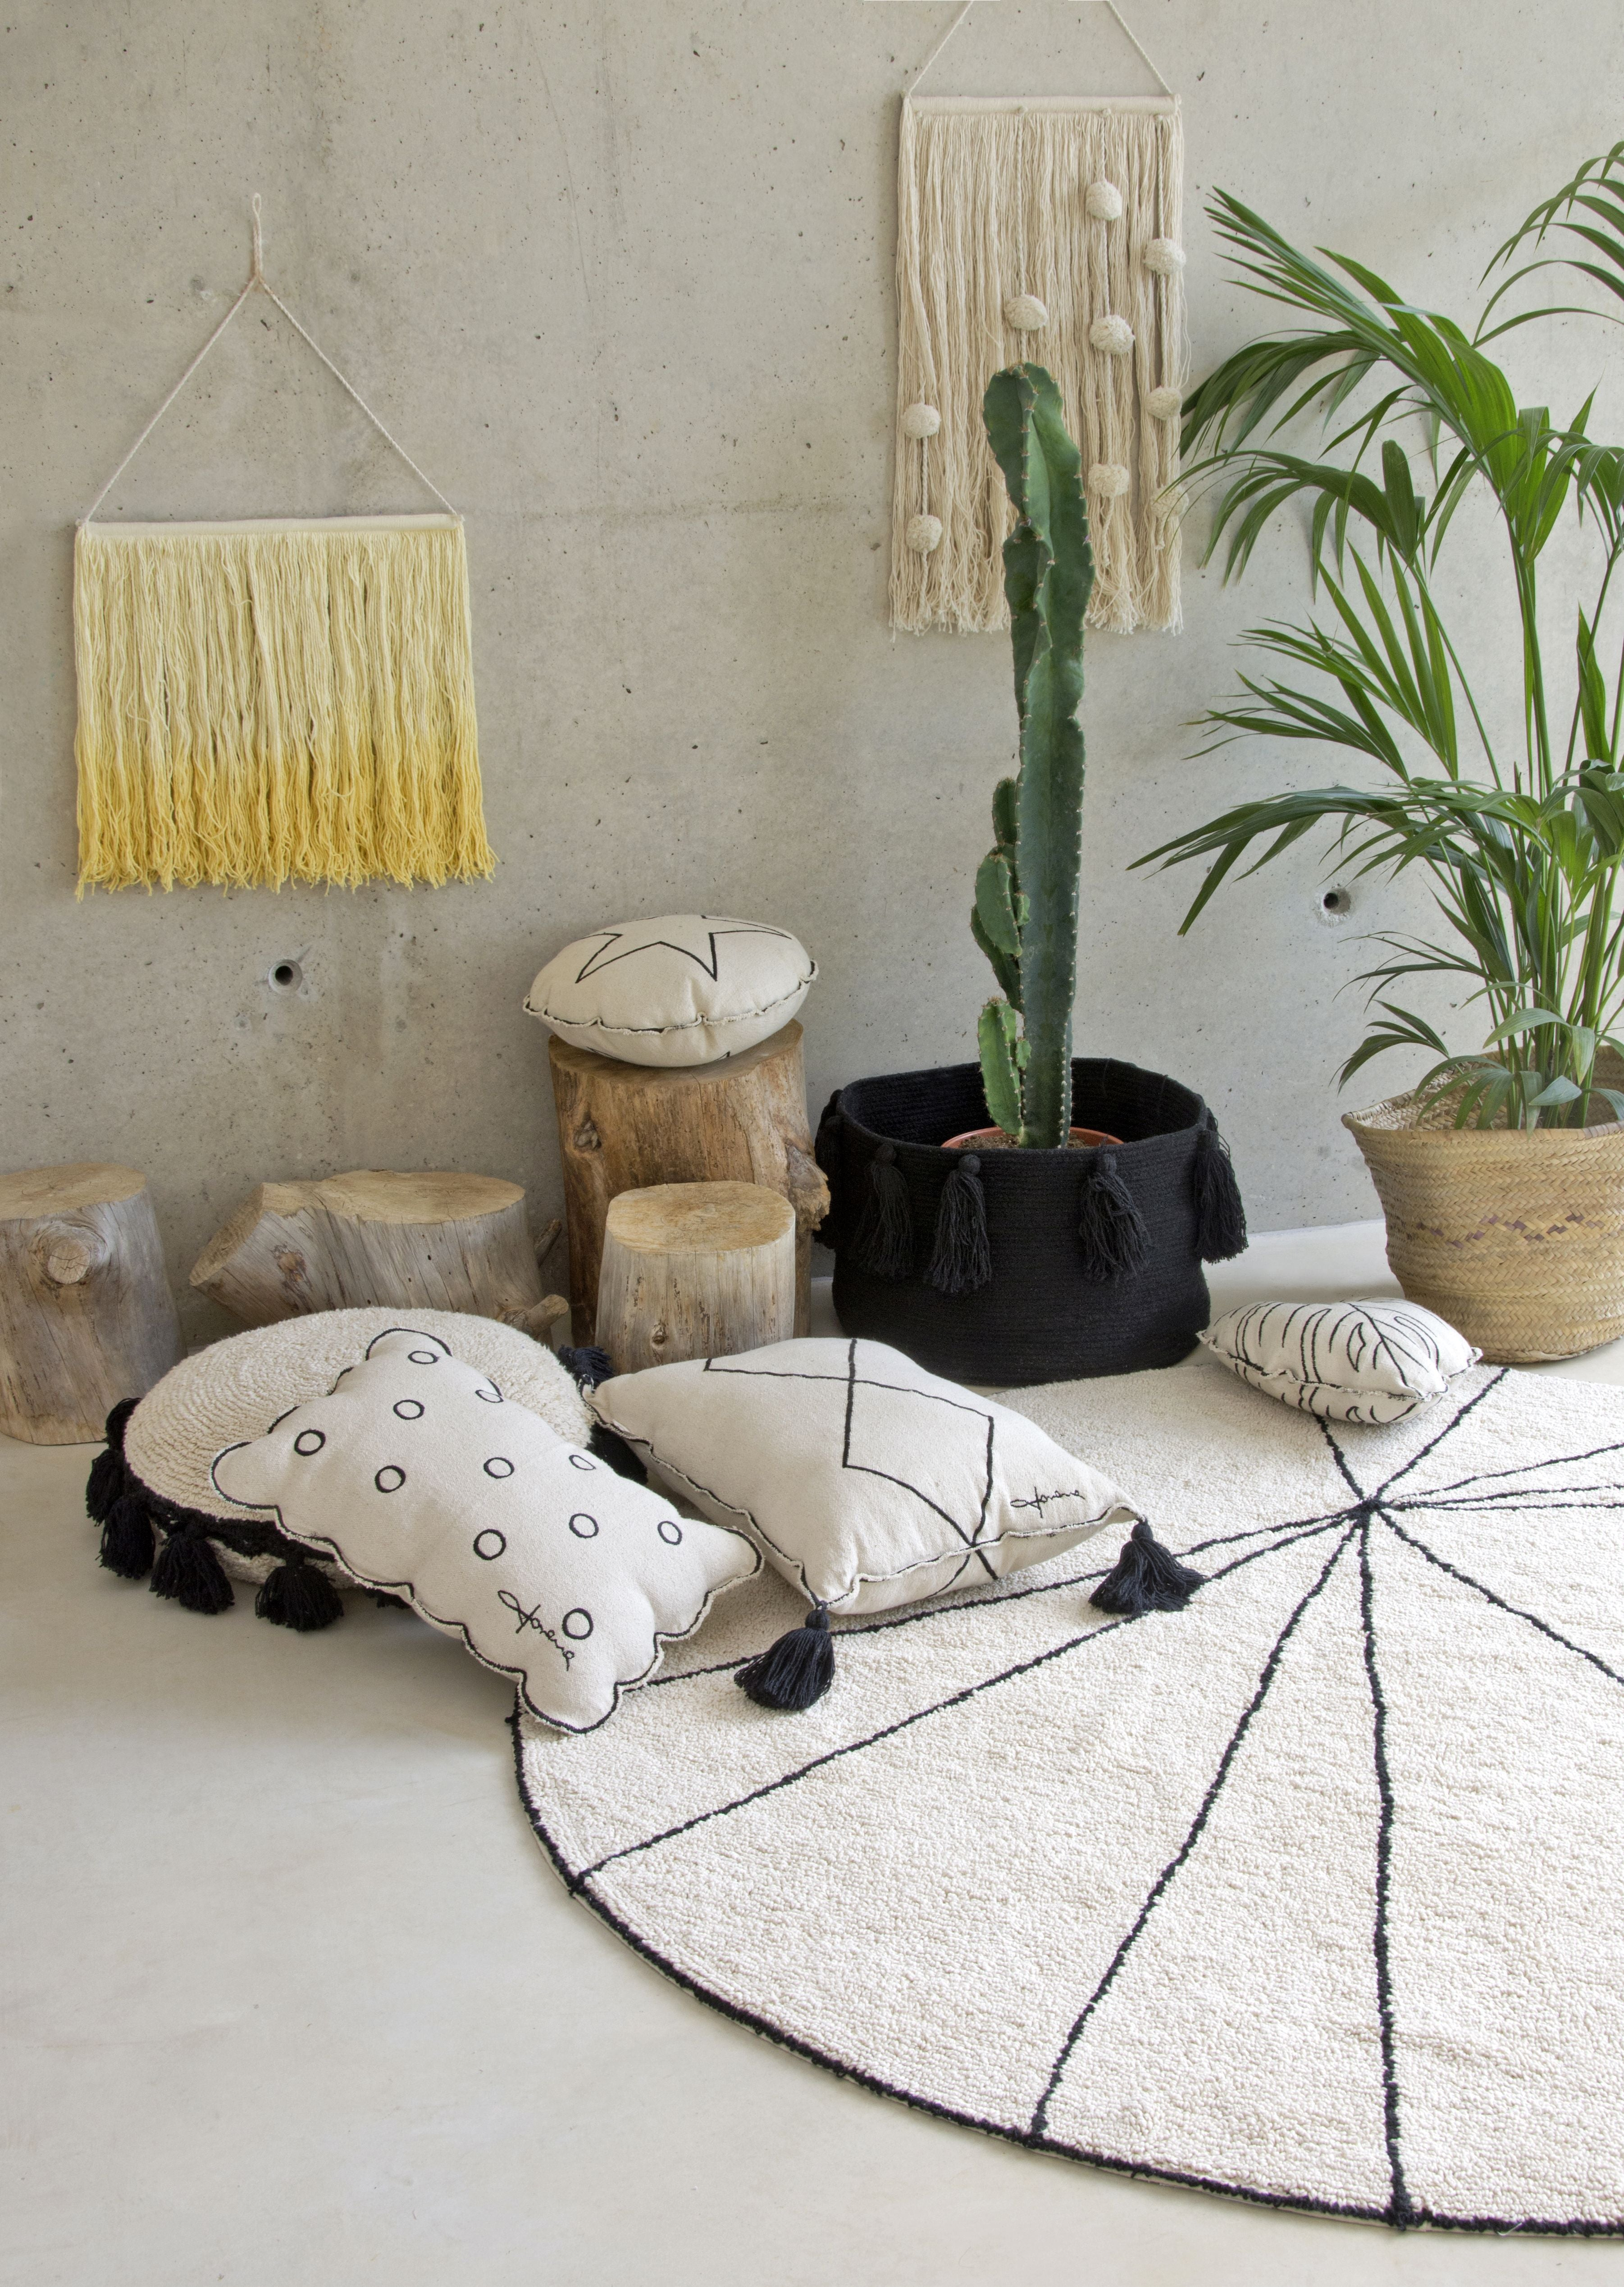 Wall Hanging Cotton Field design by Lorena Canals